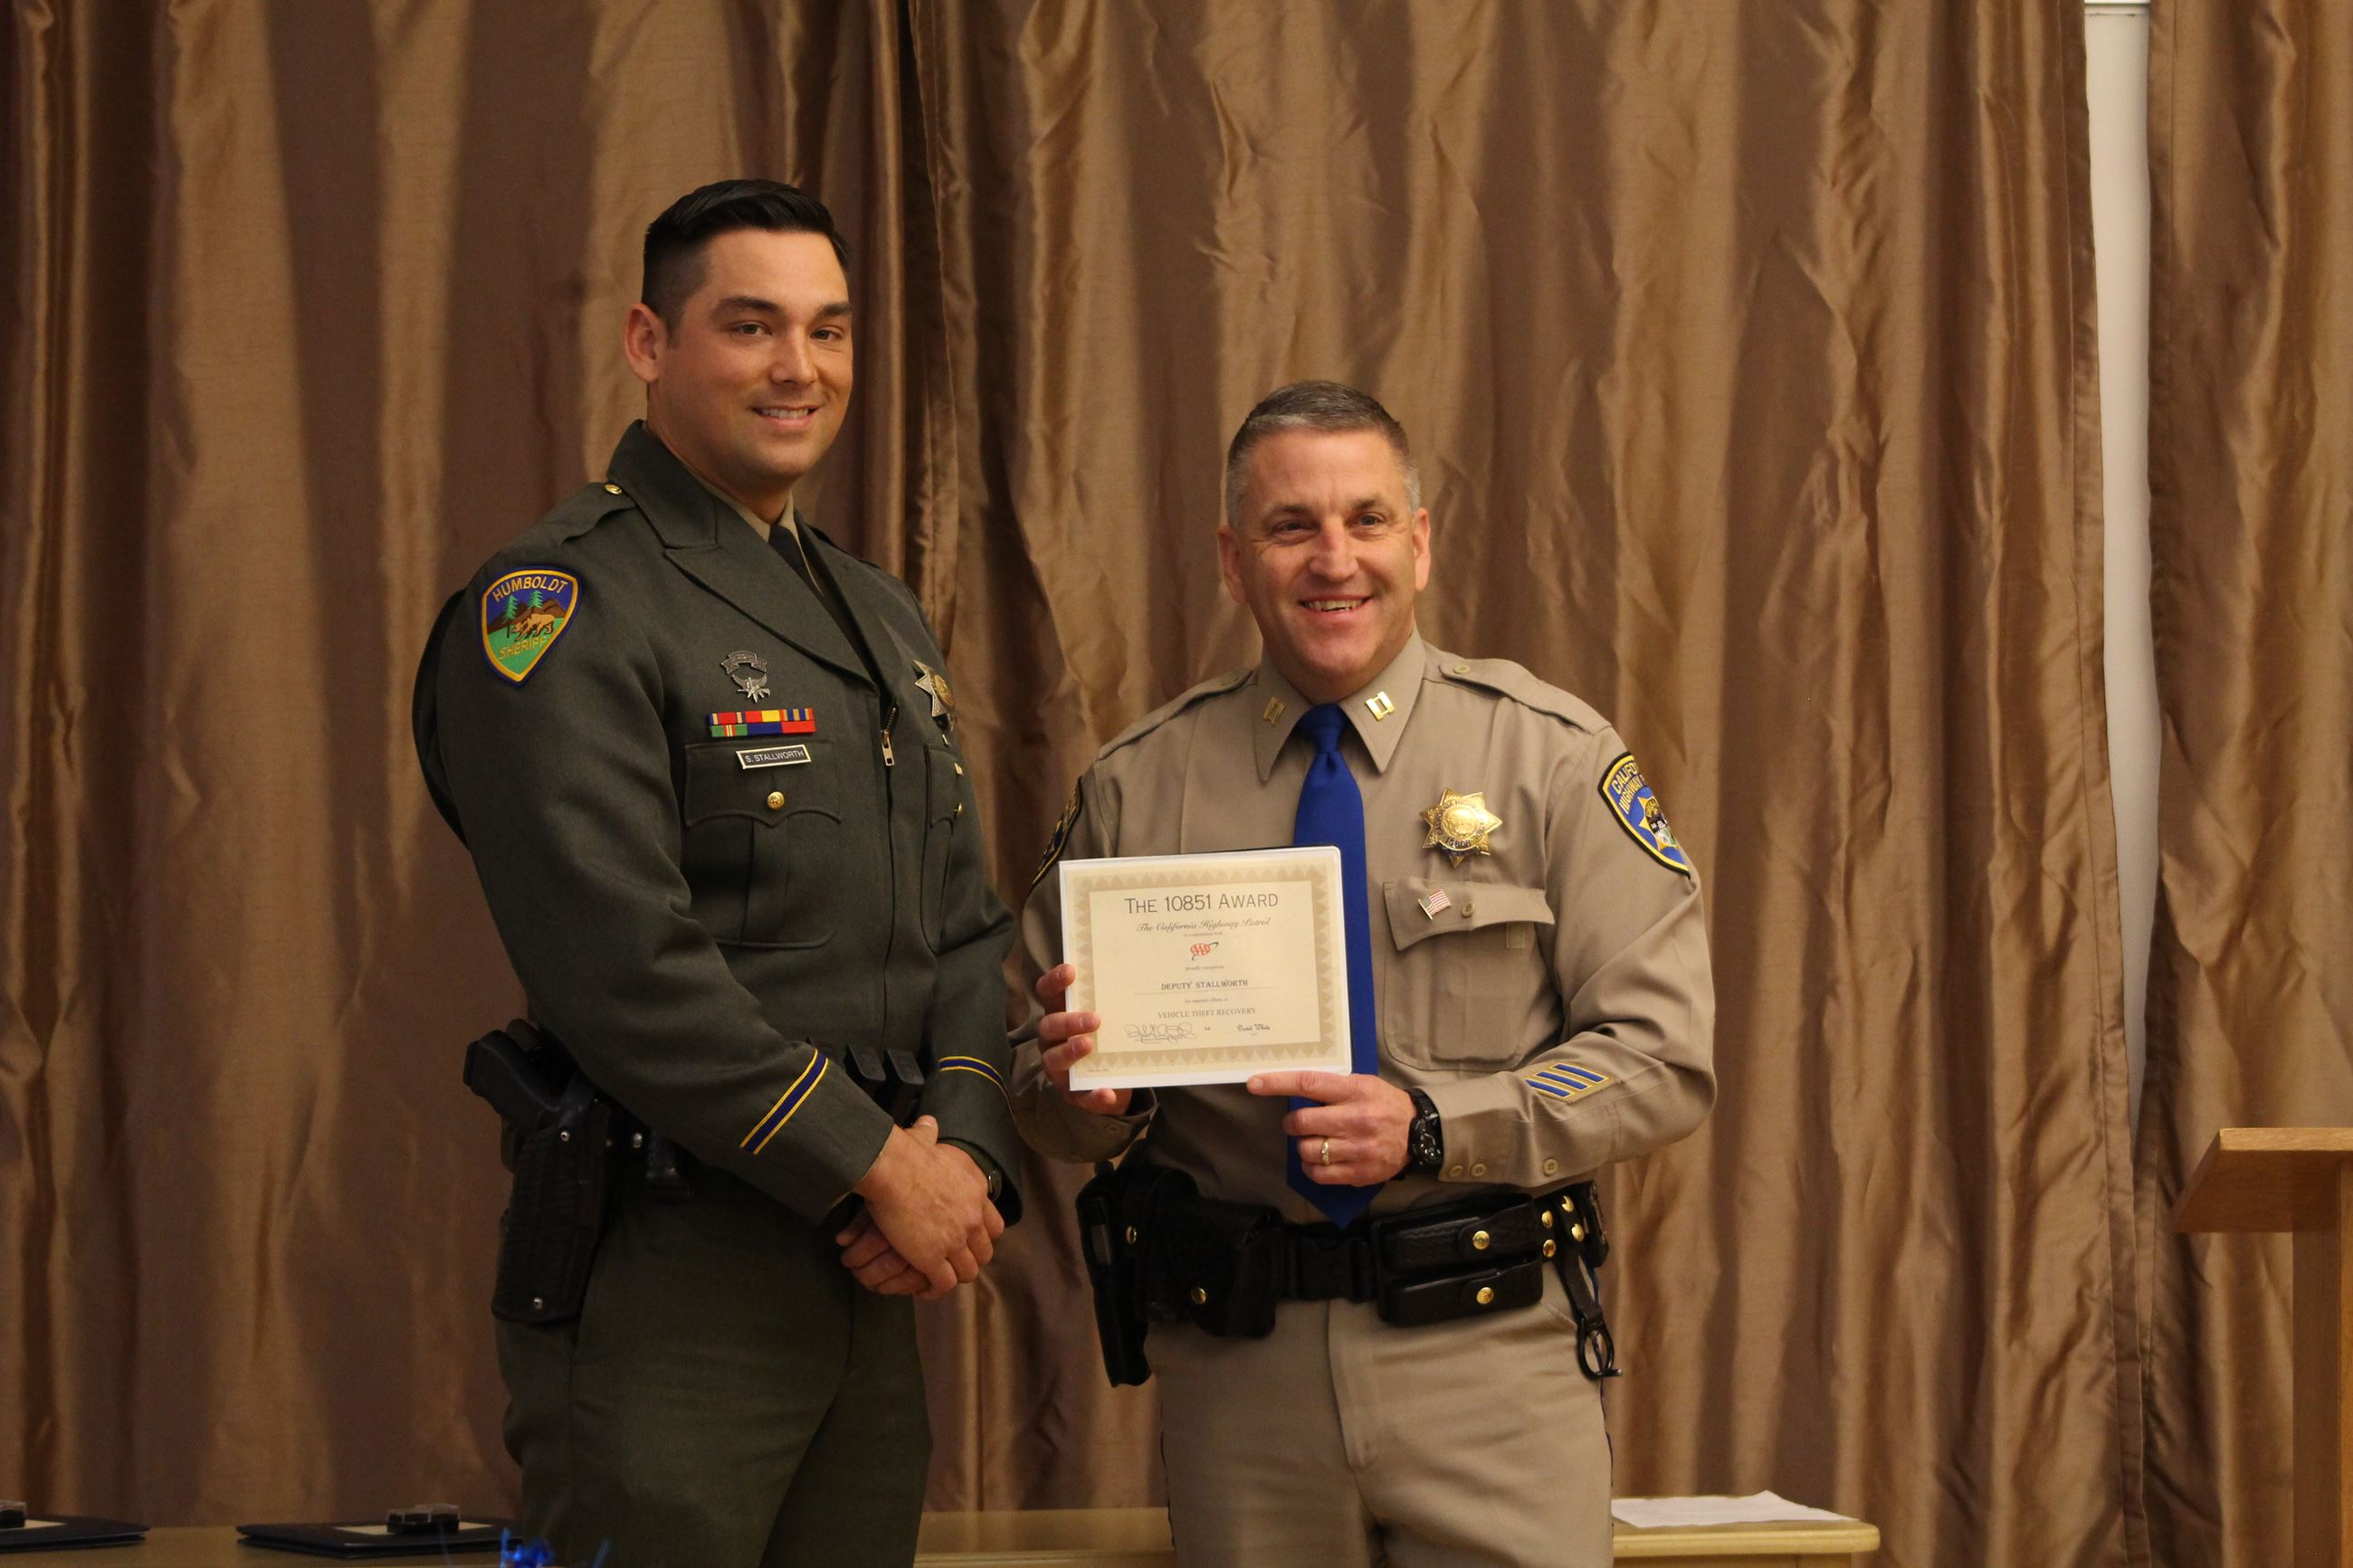 Deputy Spellman receives award from a CHP officer